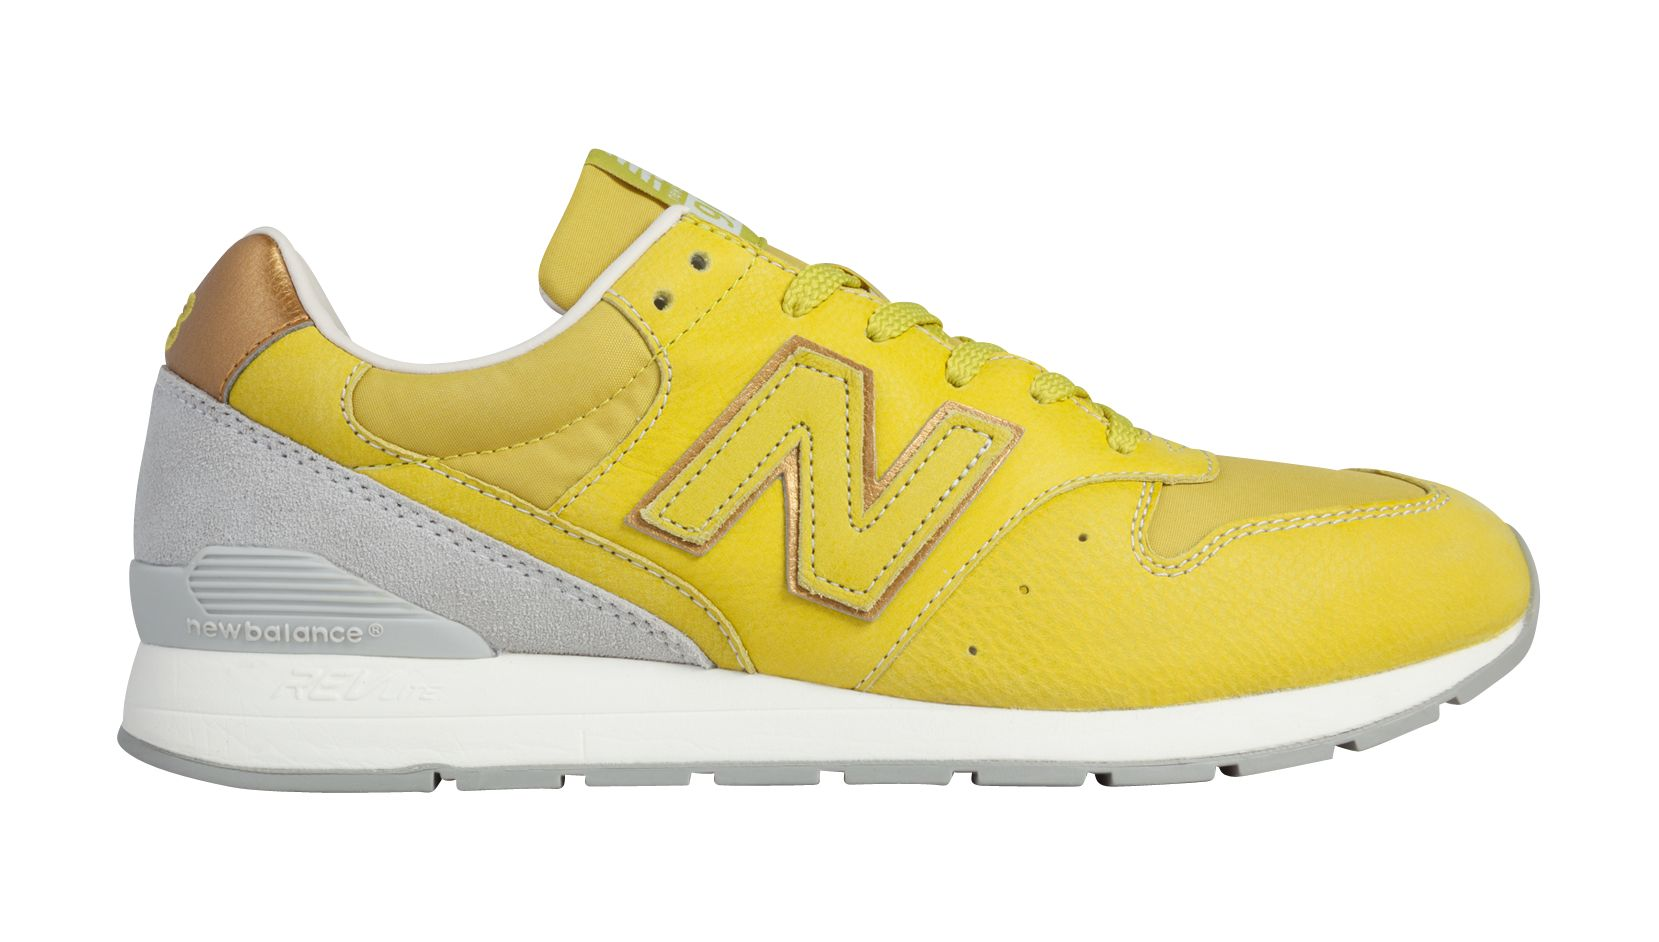 new balance yellow